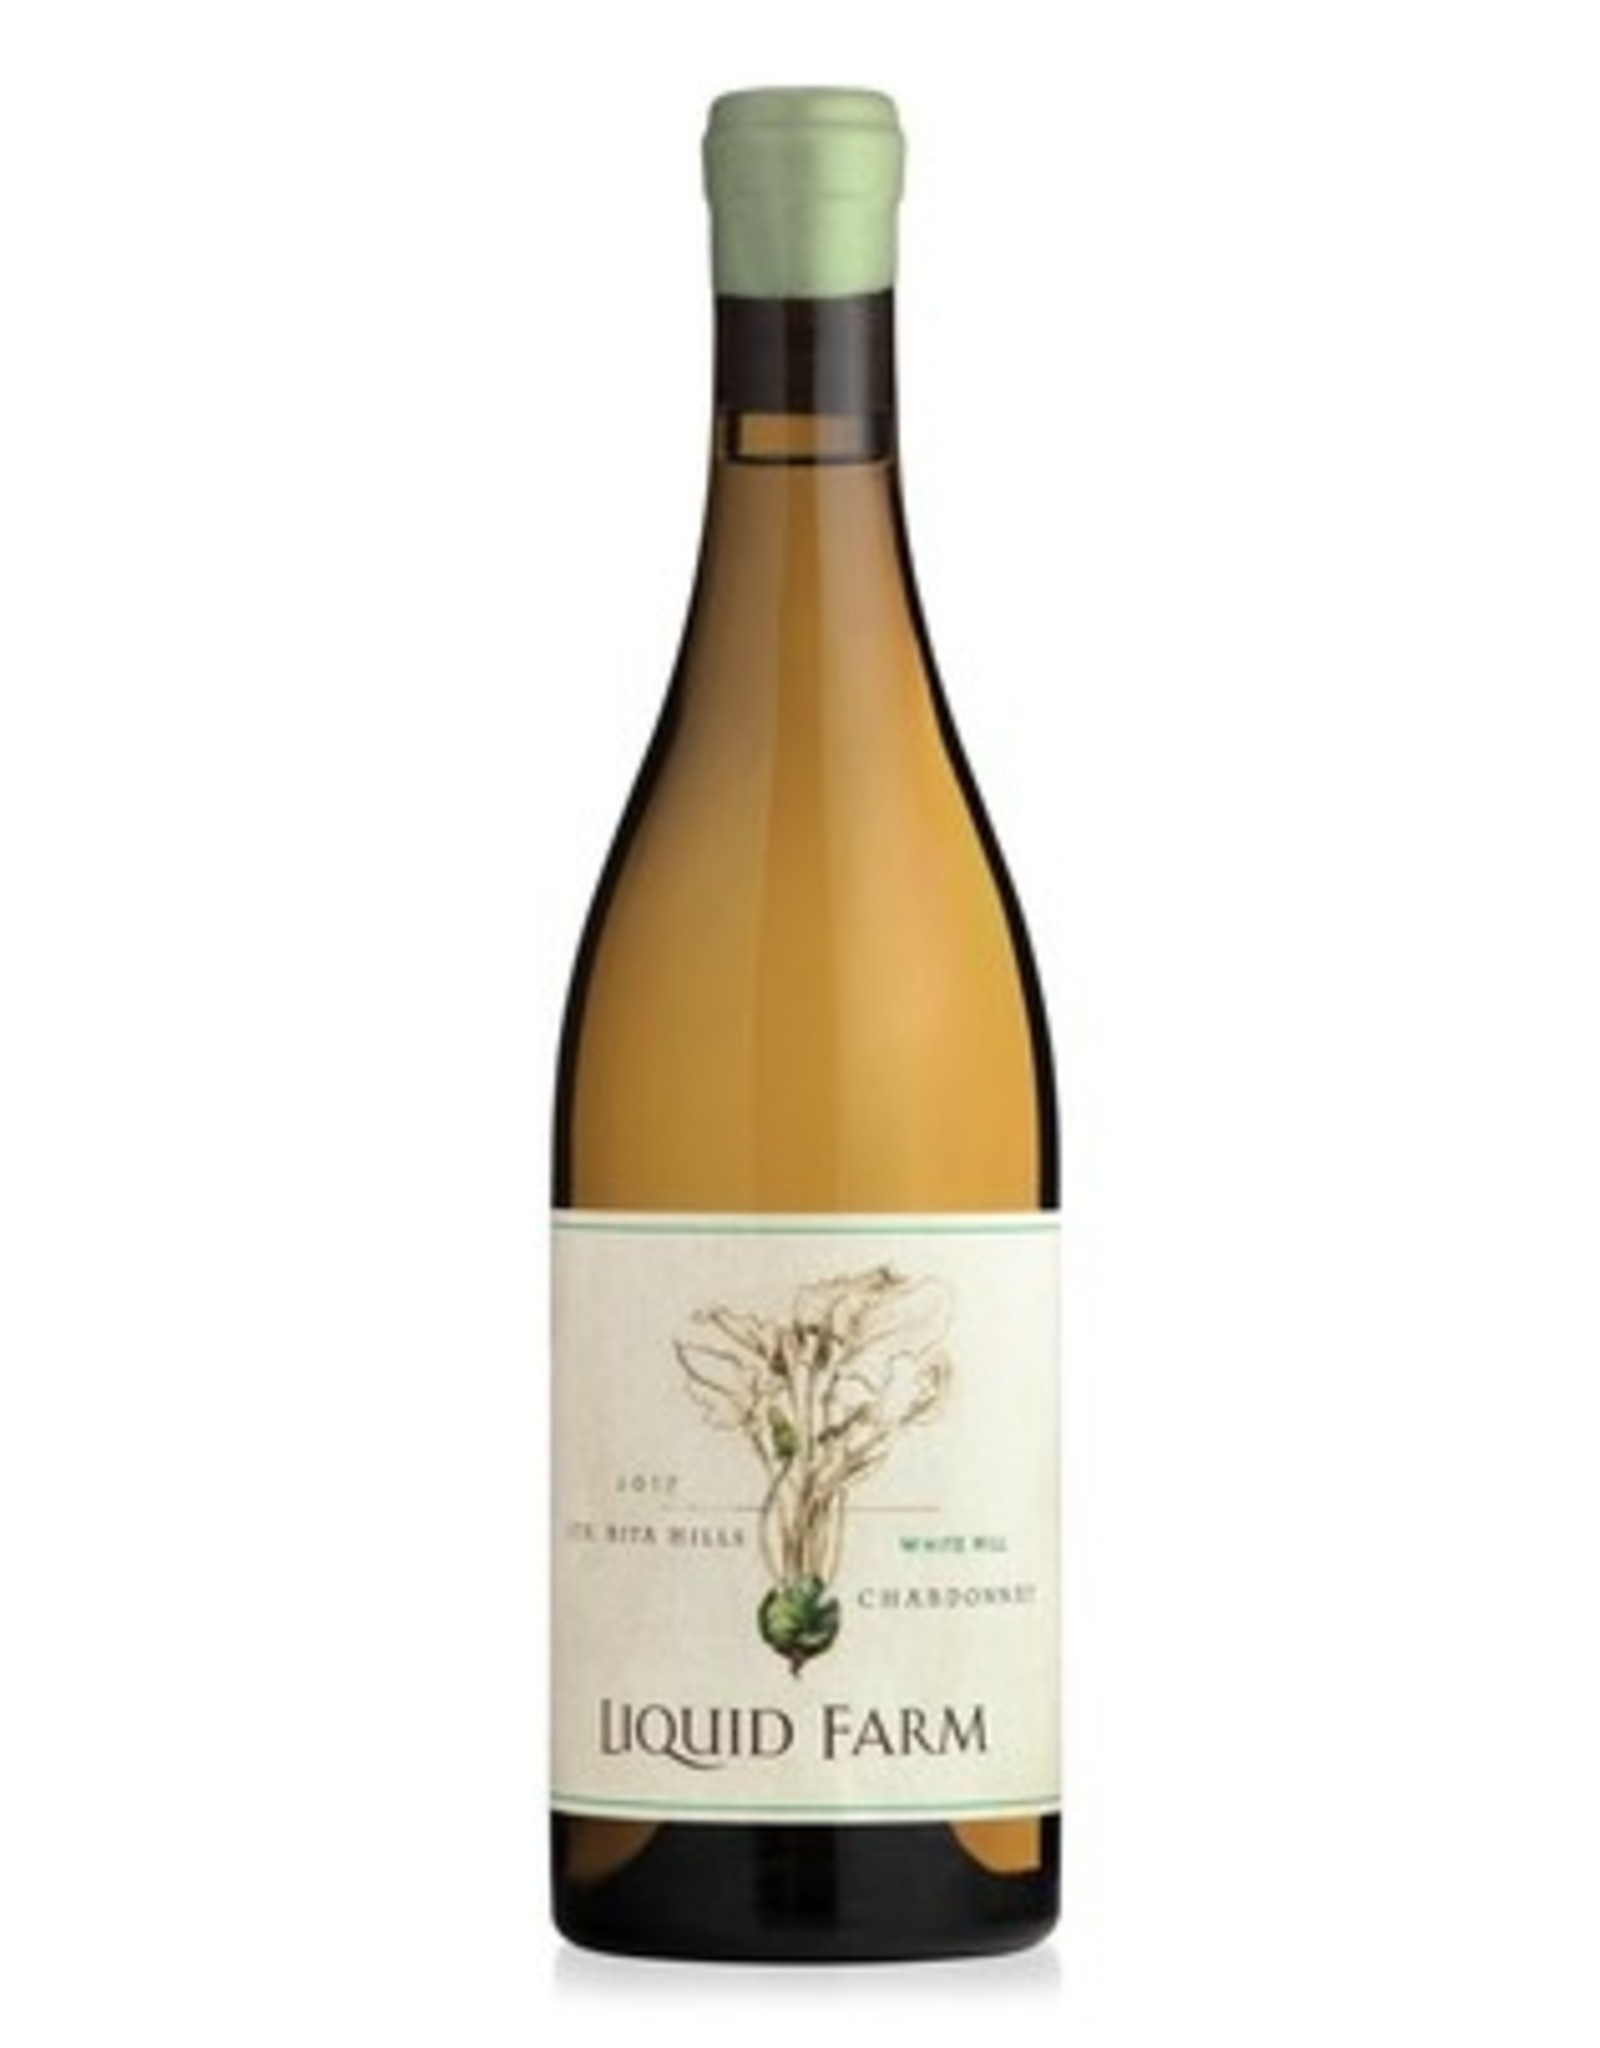 Liquid Farm White Hill Chardonnay